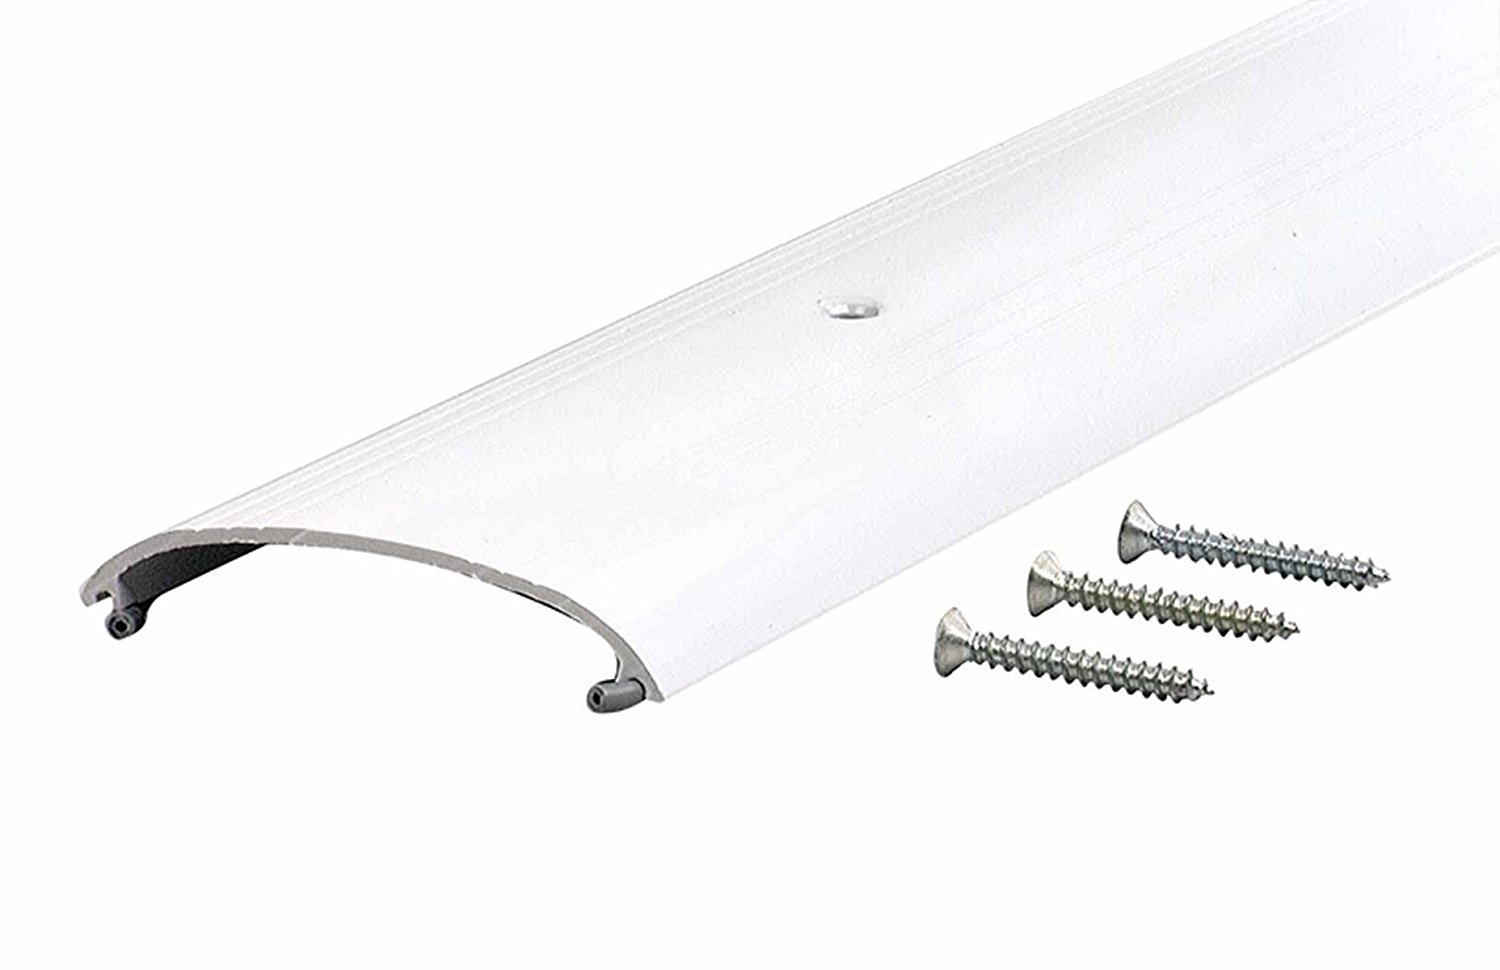 M-D Building Products 81828 1-Inch by 4-Inch by 36-Inch TH009 High Dome Top Threshold, White